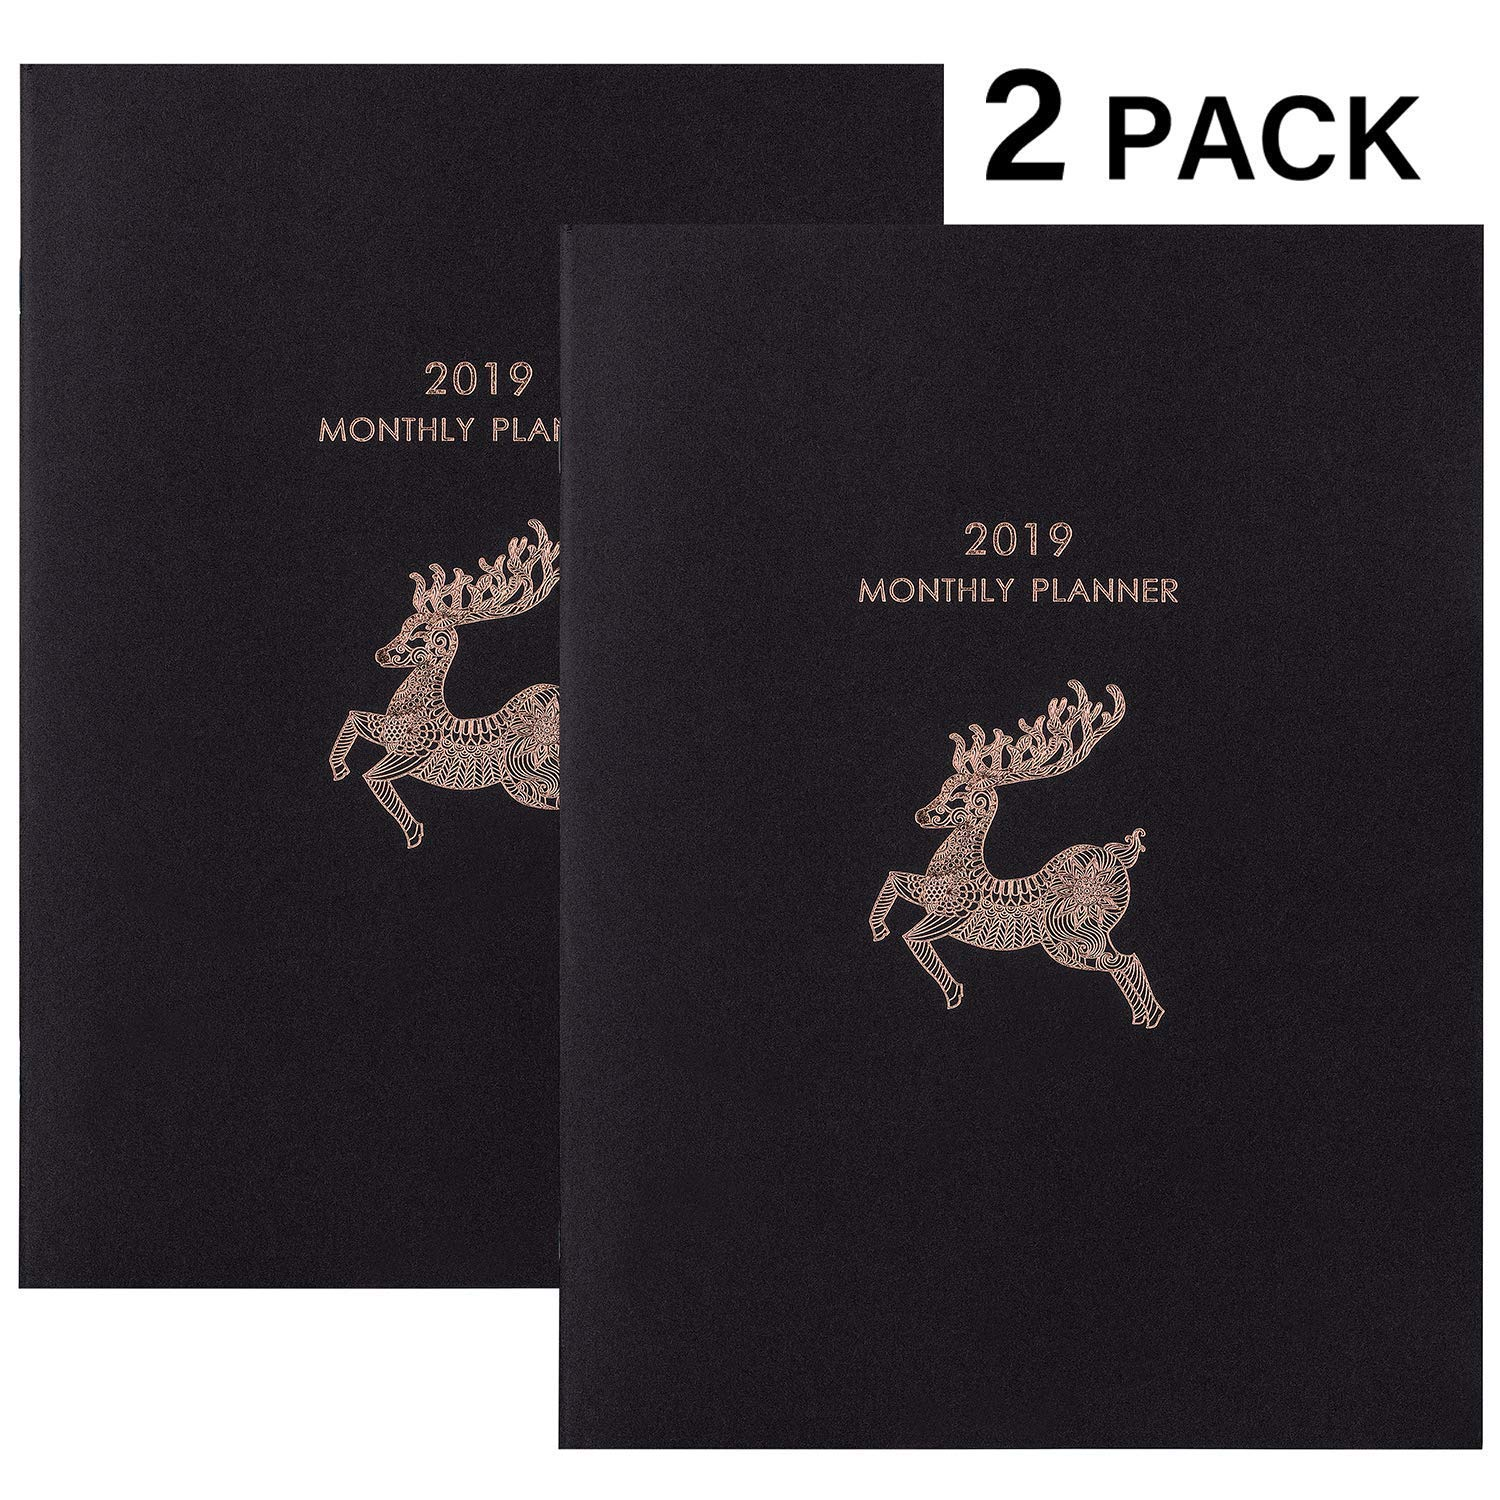 3 99 reg 8 99 free ship 2019 monthly planner 2 pack qpanion